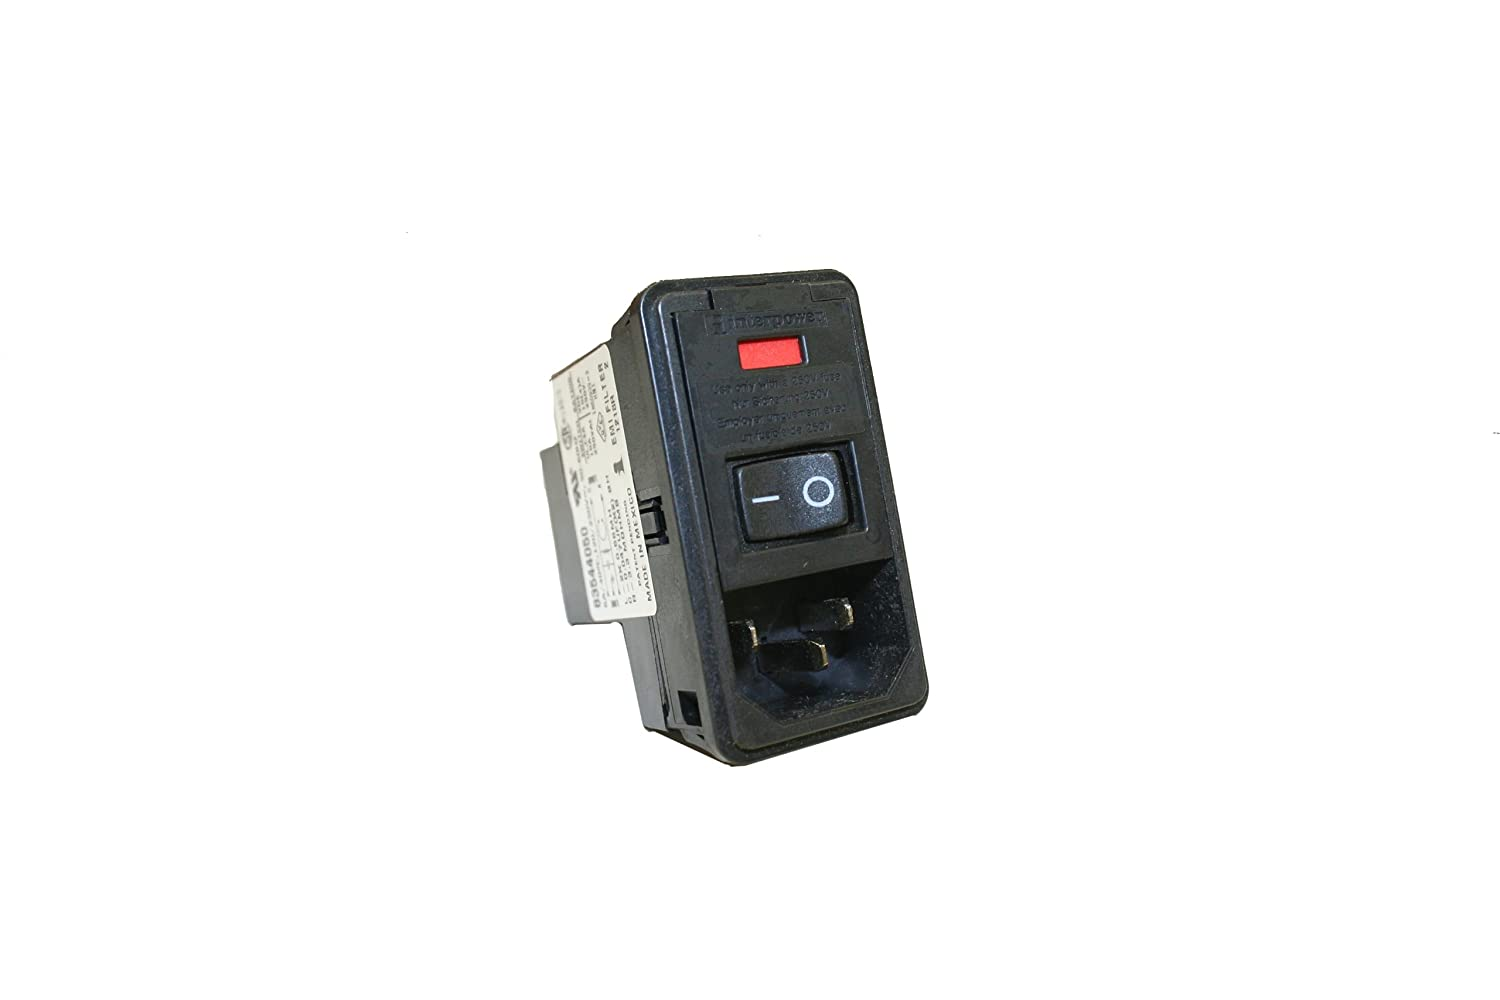 120//250VAC Voltage Rating 10A Current Rating Interpower 83544030 Four Function Double Fused Screw Mount Module C14 Inlet Double Fused Switch Voltage Selector